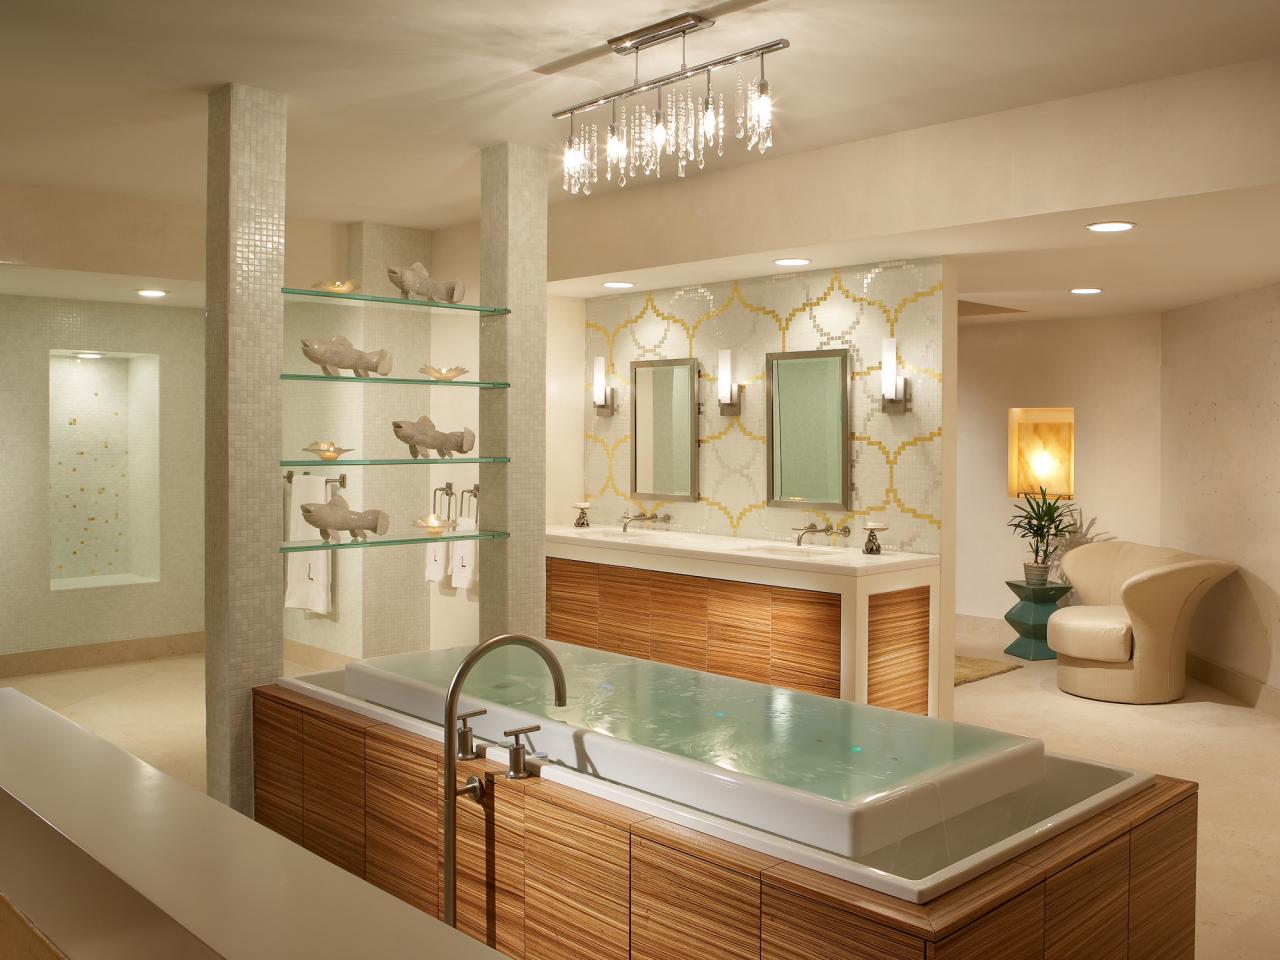 Best Of Designers 39 Portfolio Bathrooms Bathroom Ideas Designs Hgtv